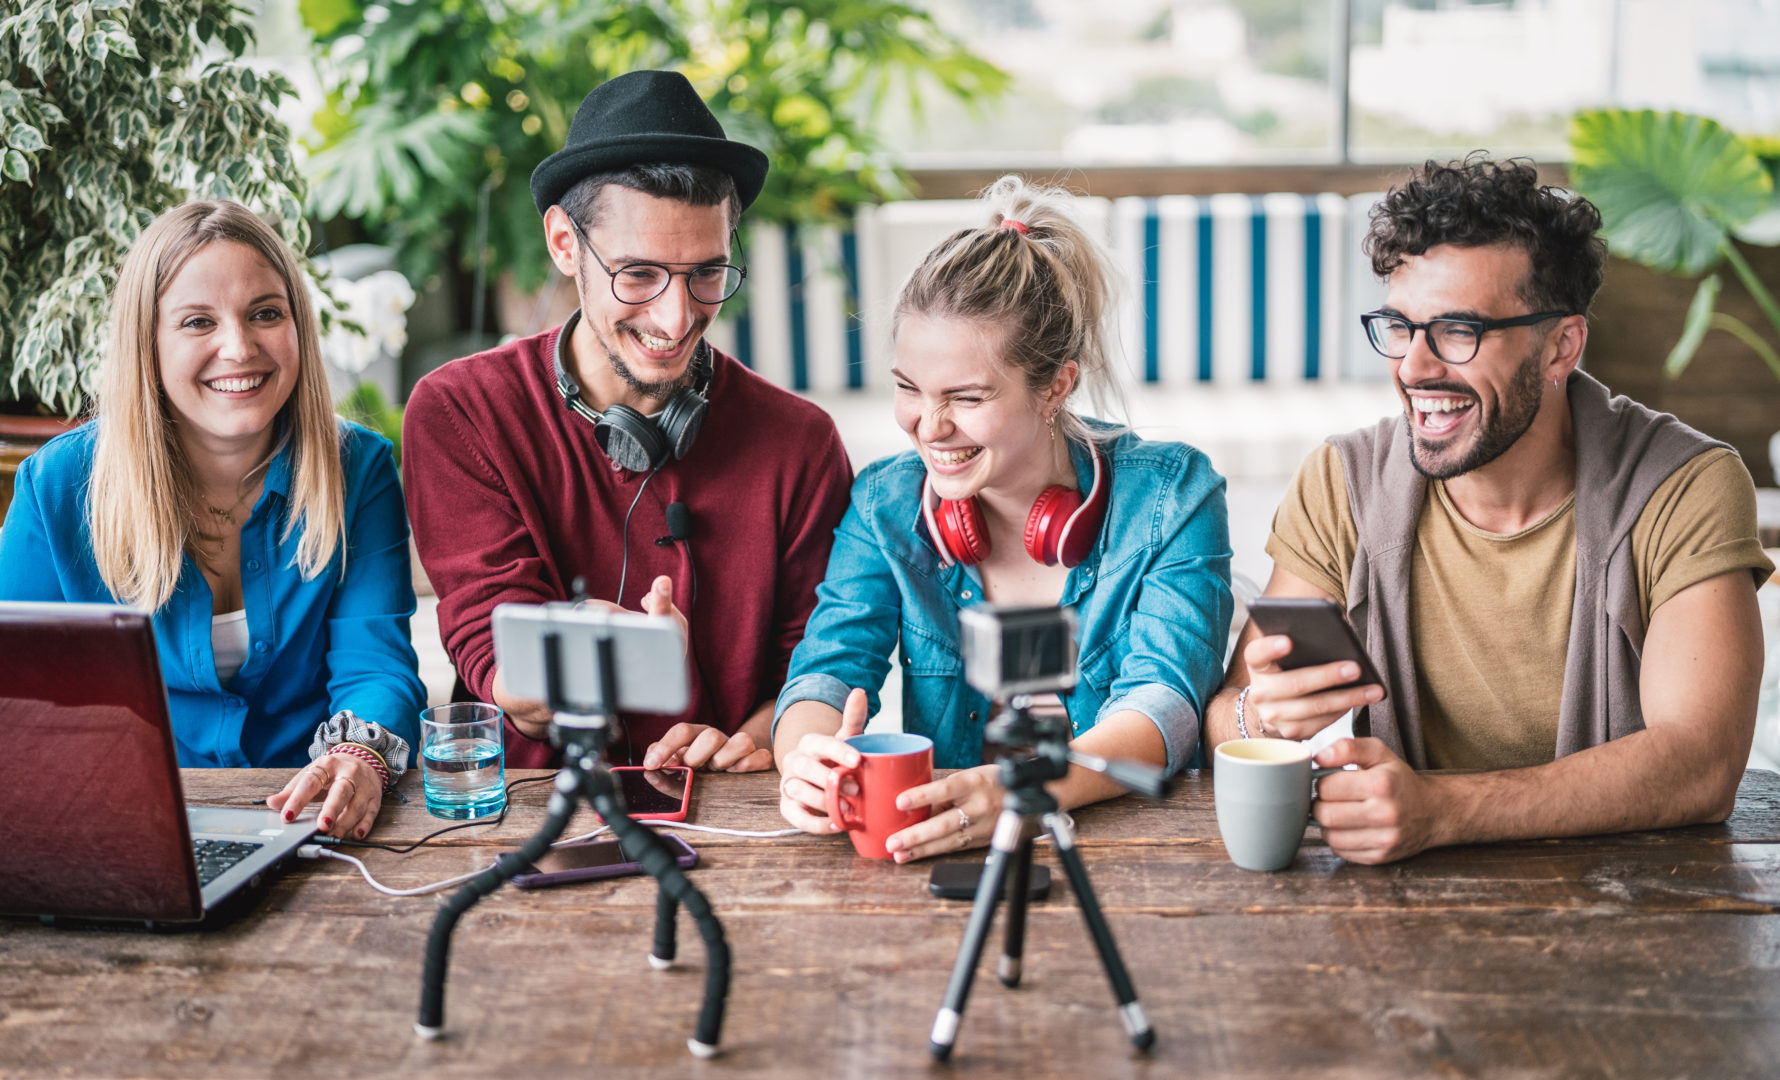 targeting generation z with paid ads - group of friends